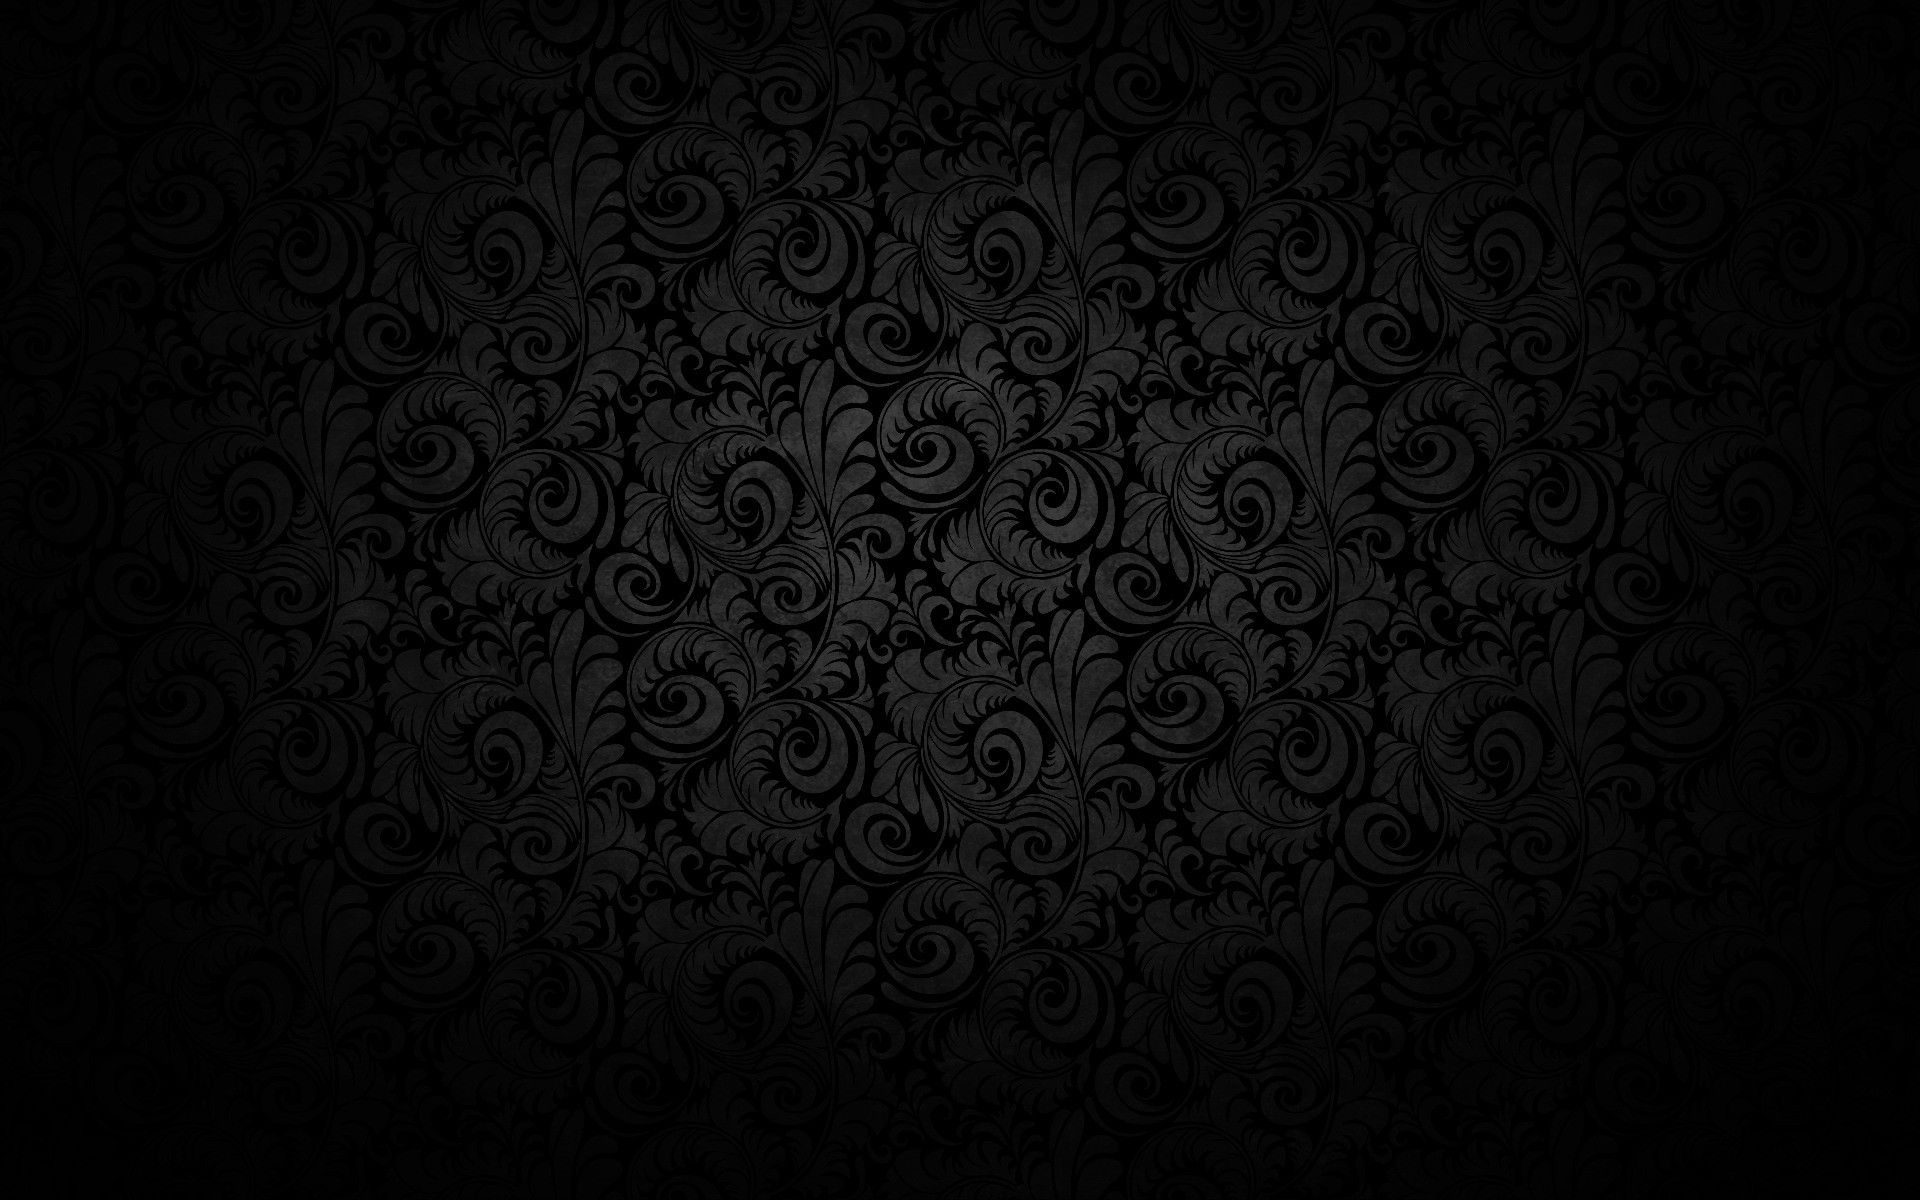 65 Black Floral Desktop Wallpapers   Download at WallpaperBro 1920x1200